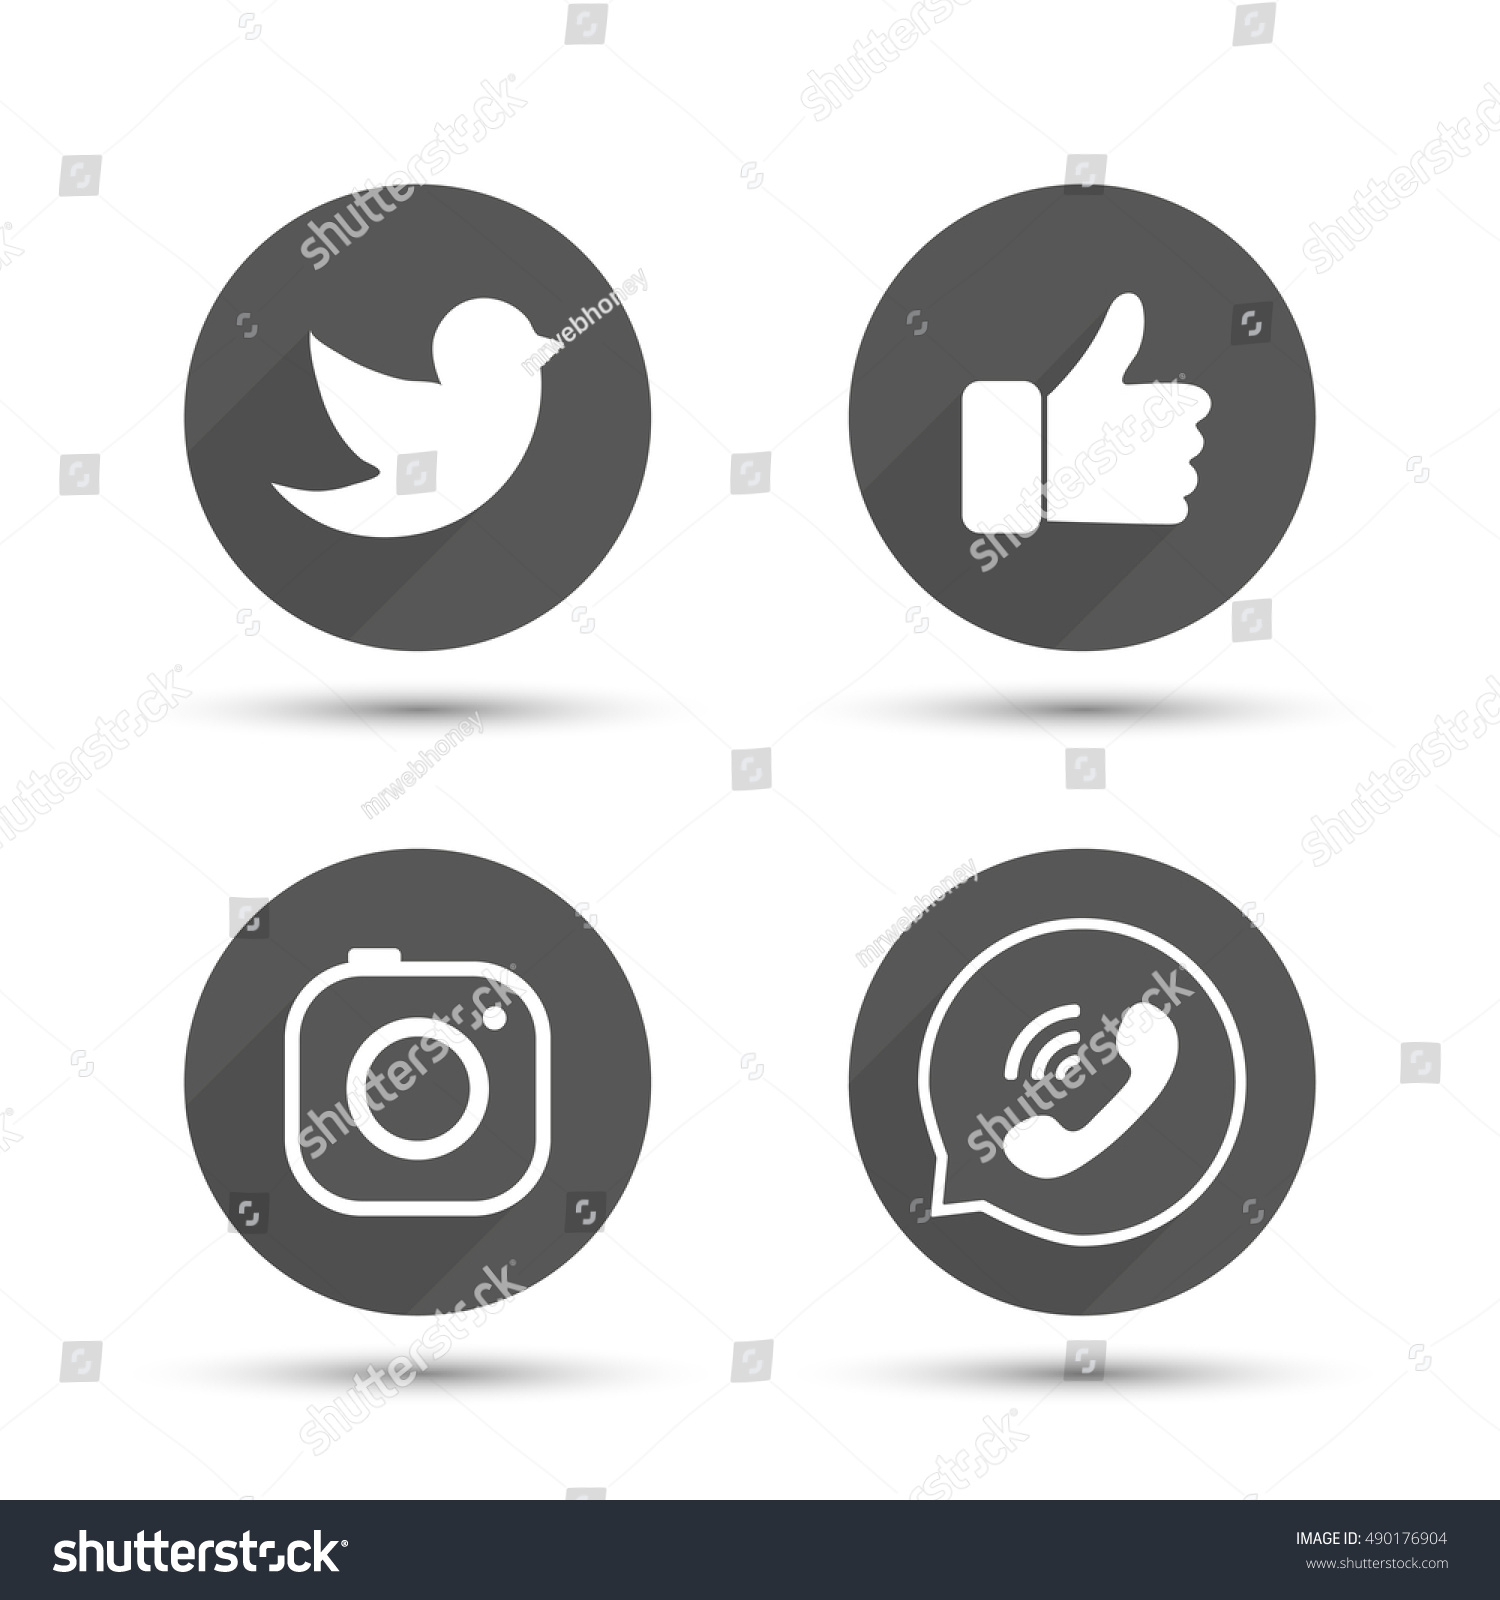 Flat designed vector icons of hipster camera, like hand symbol, thumbs up, bird and phone for social media, interfaces, websites vector illustration #490176904